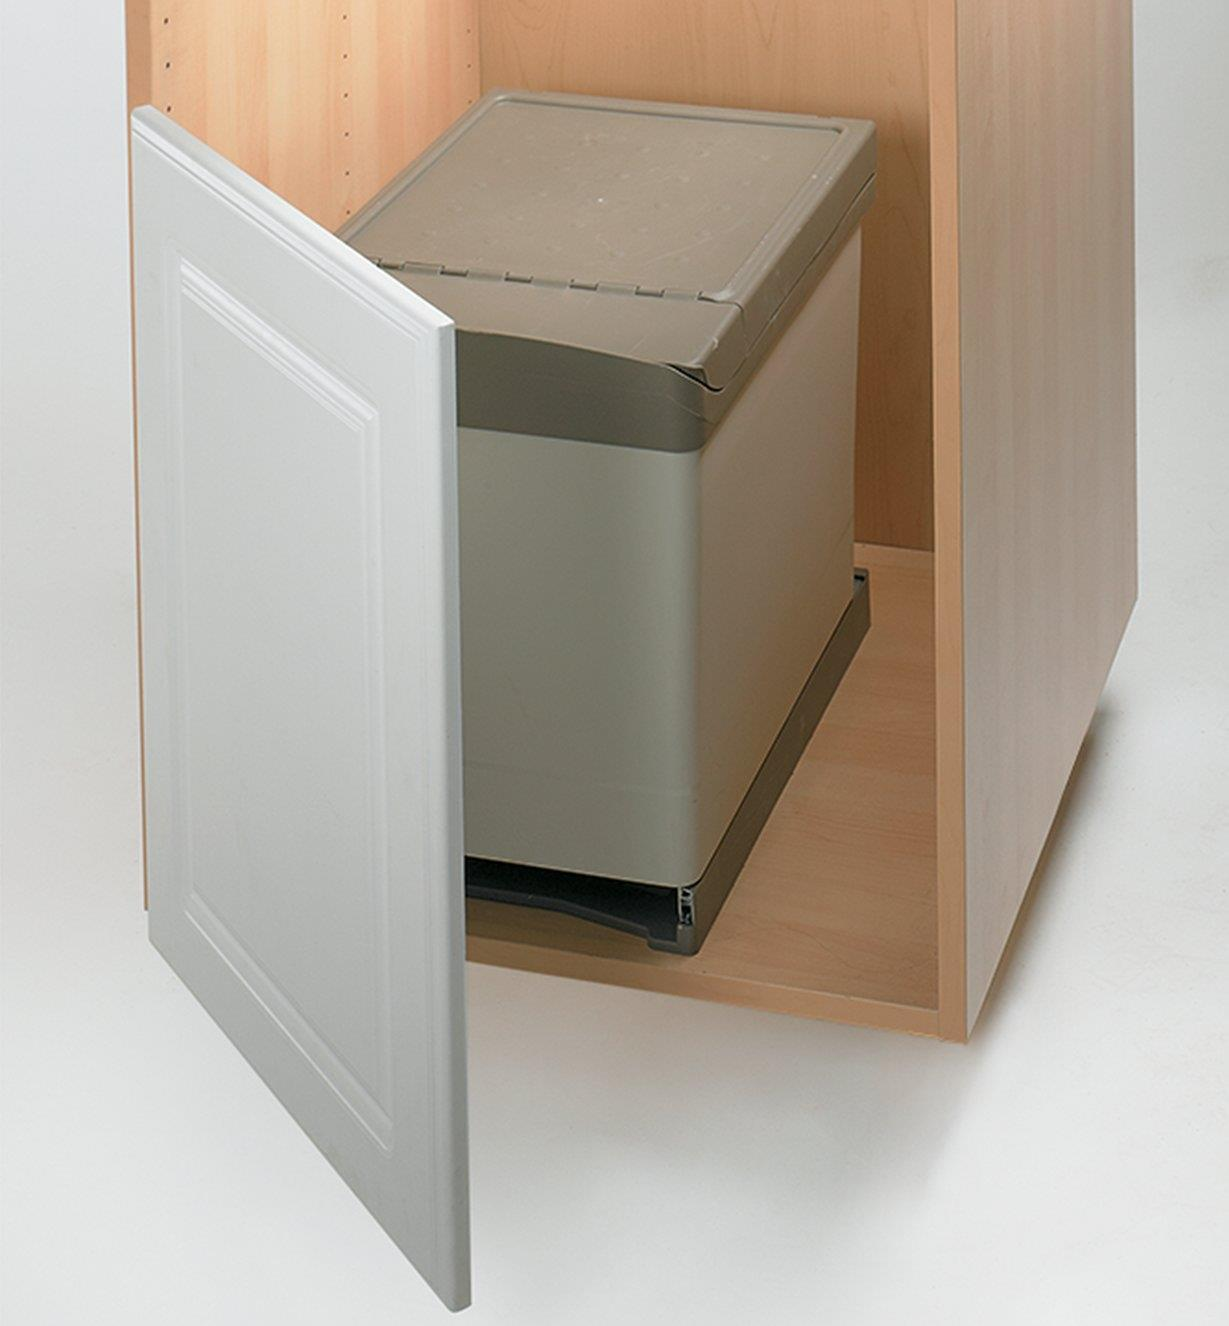 Waste container fully retracted into the cabinet